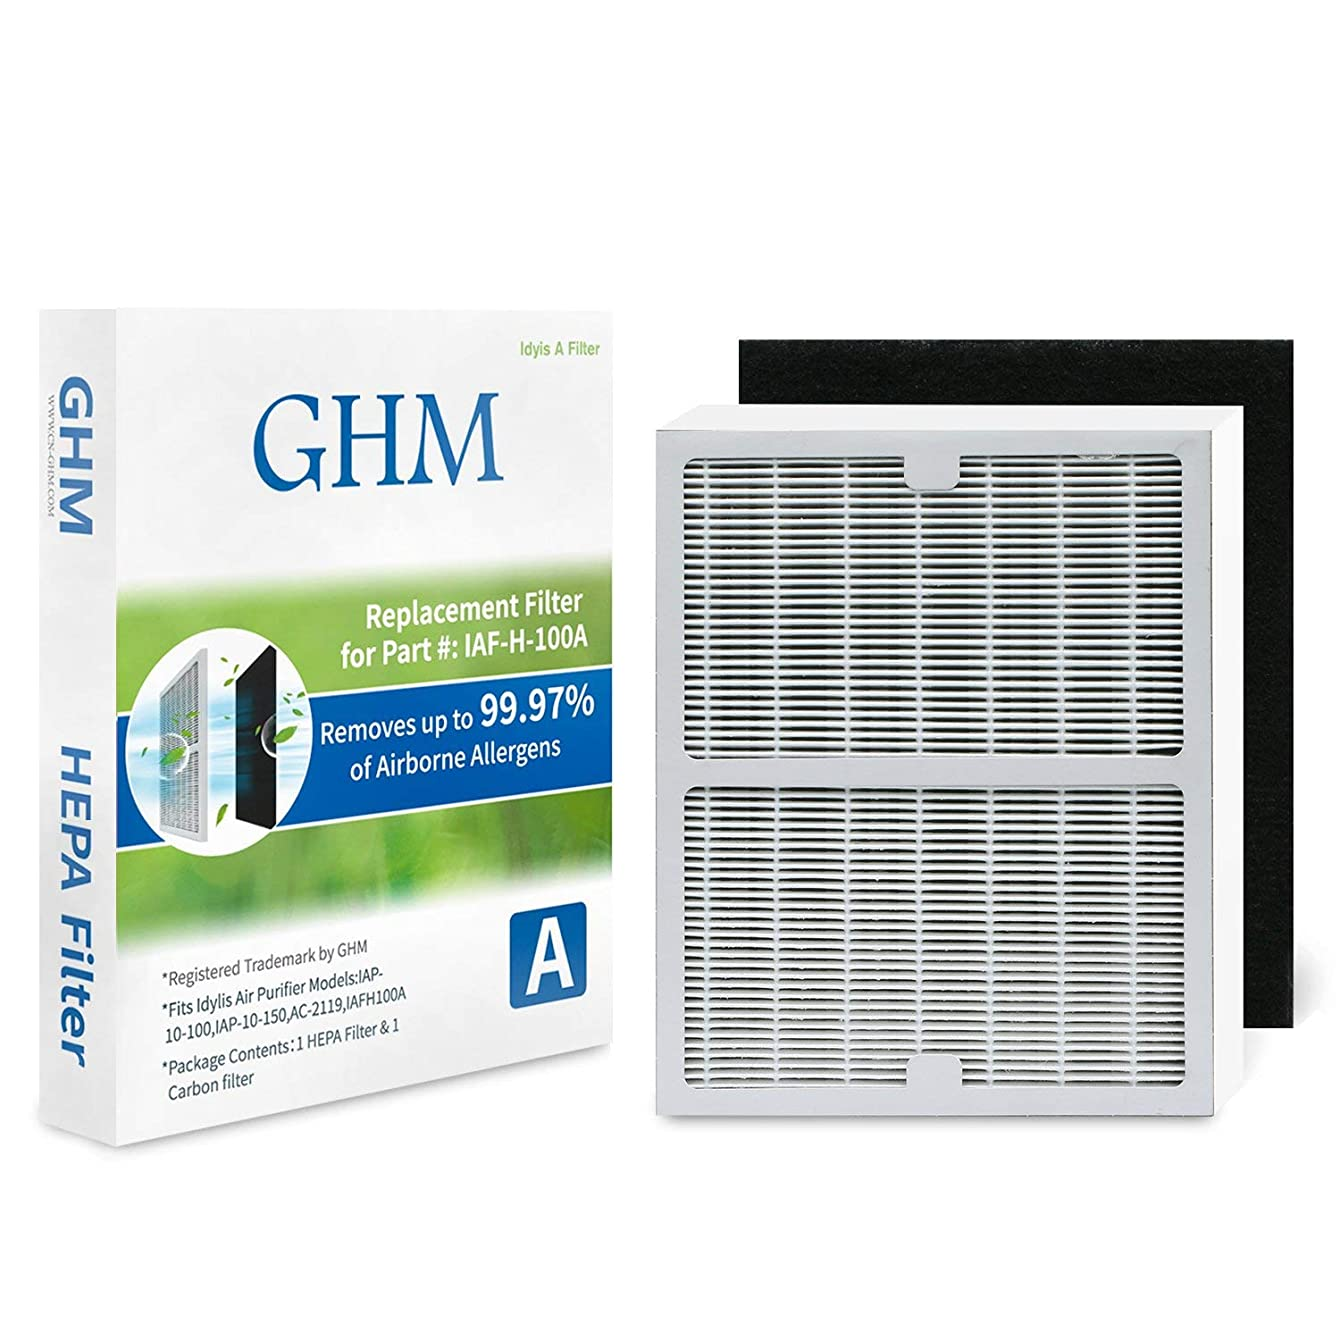 GHM Part # IAF-H-100A Replacement Idylis A Filter for Idylis Air Purifier Models AC-2119, IAP-10-100, APC-40-140, 2119 and IAP-10-150